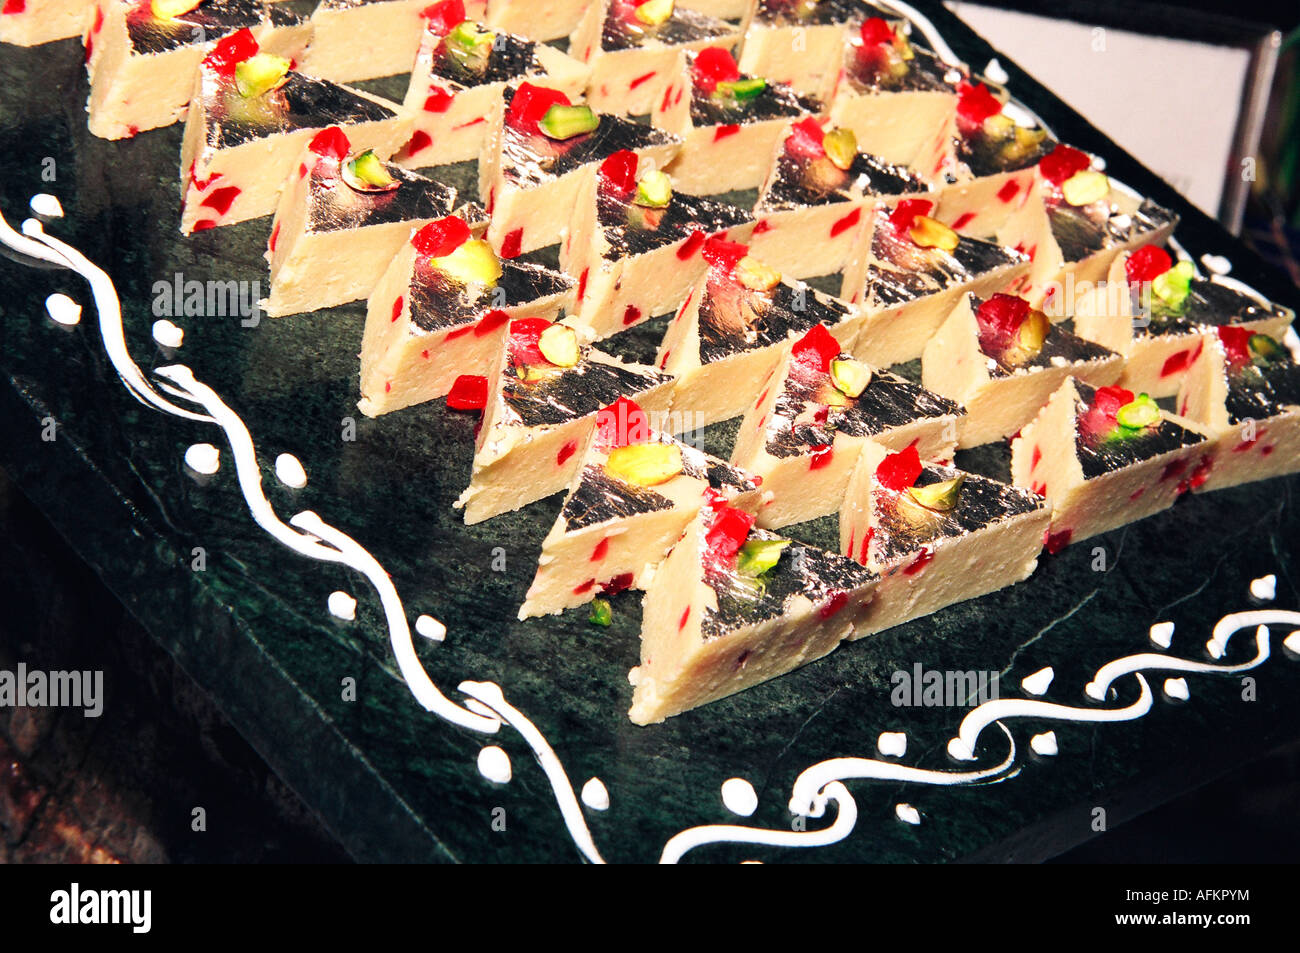 Indian Sweets also known as mithai - Stock Image